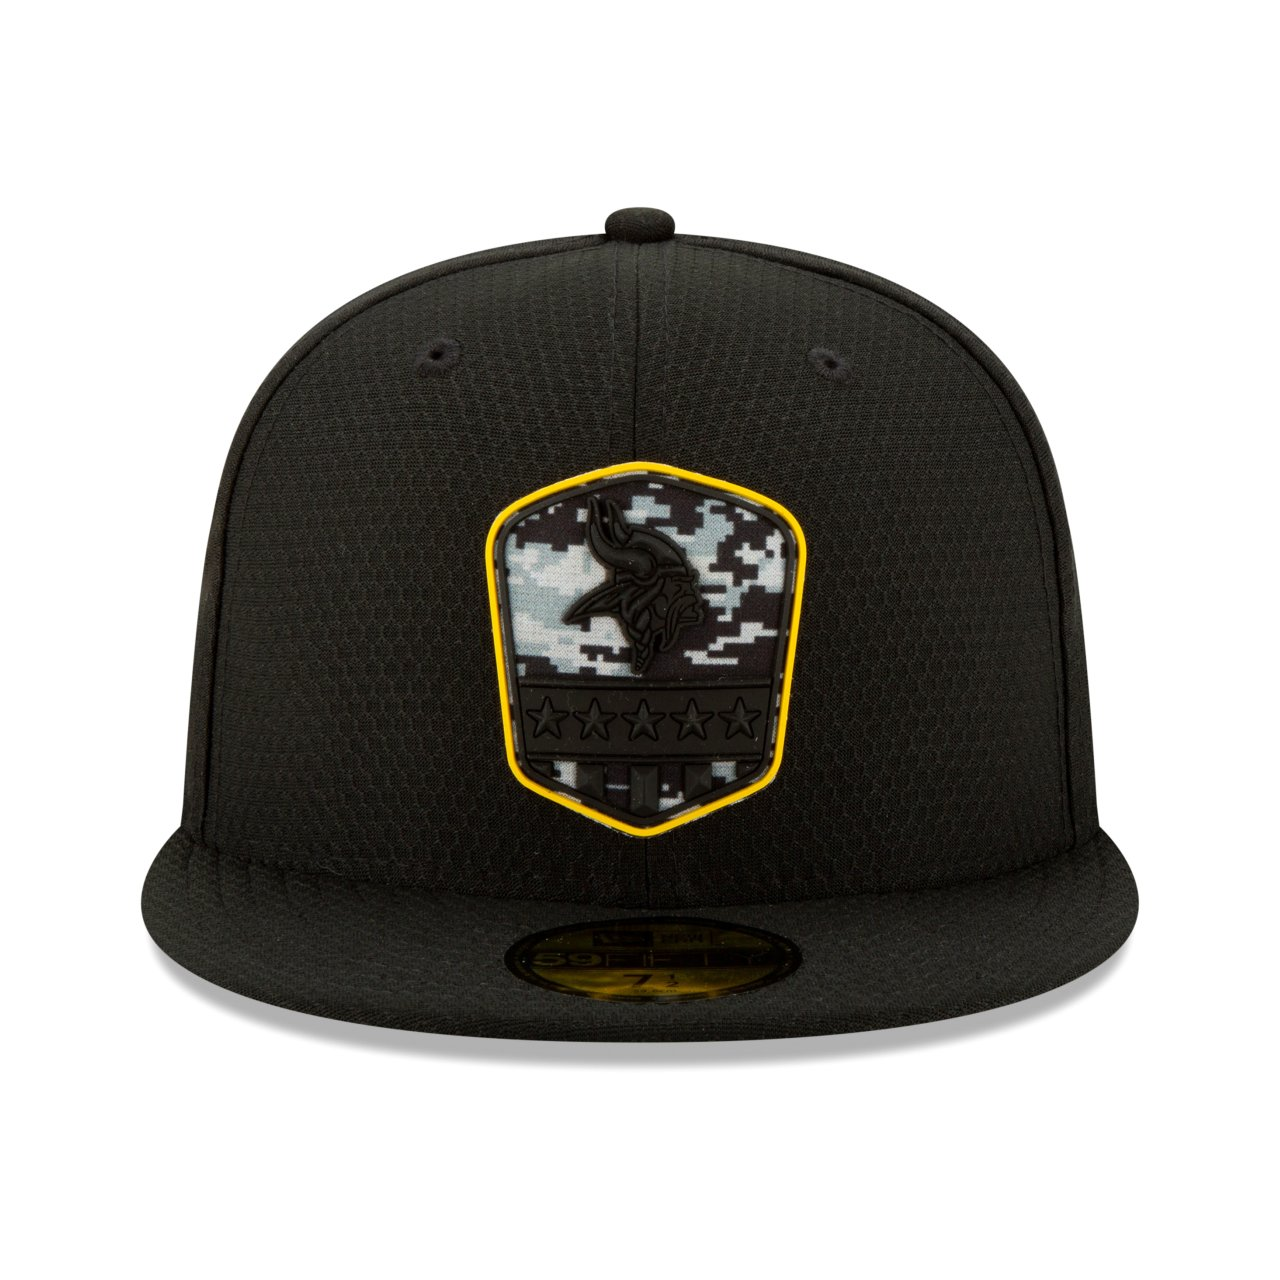 New Era 59Fifty Fitted Cap NFL Salute to Service BLACK